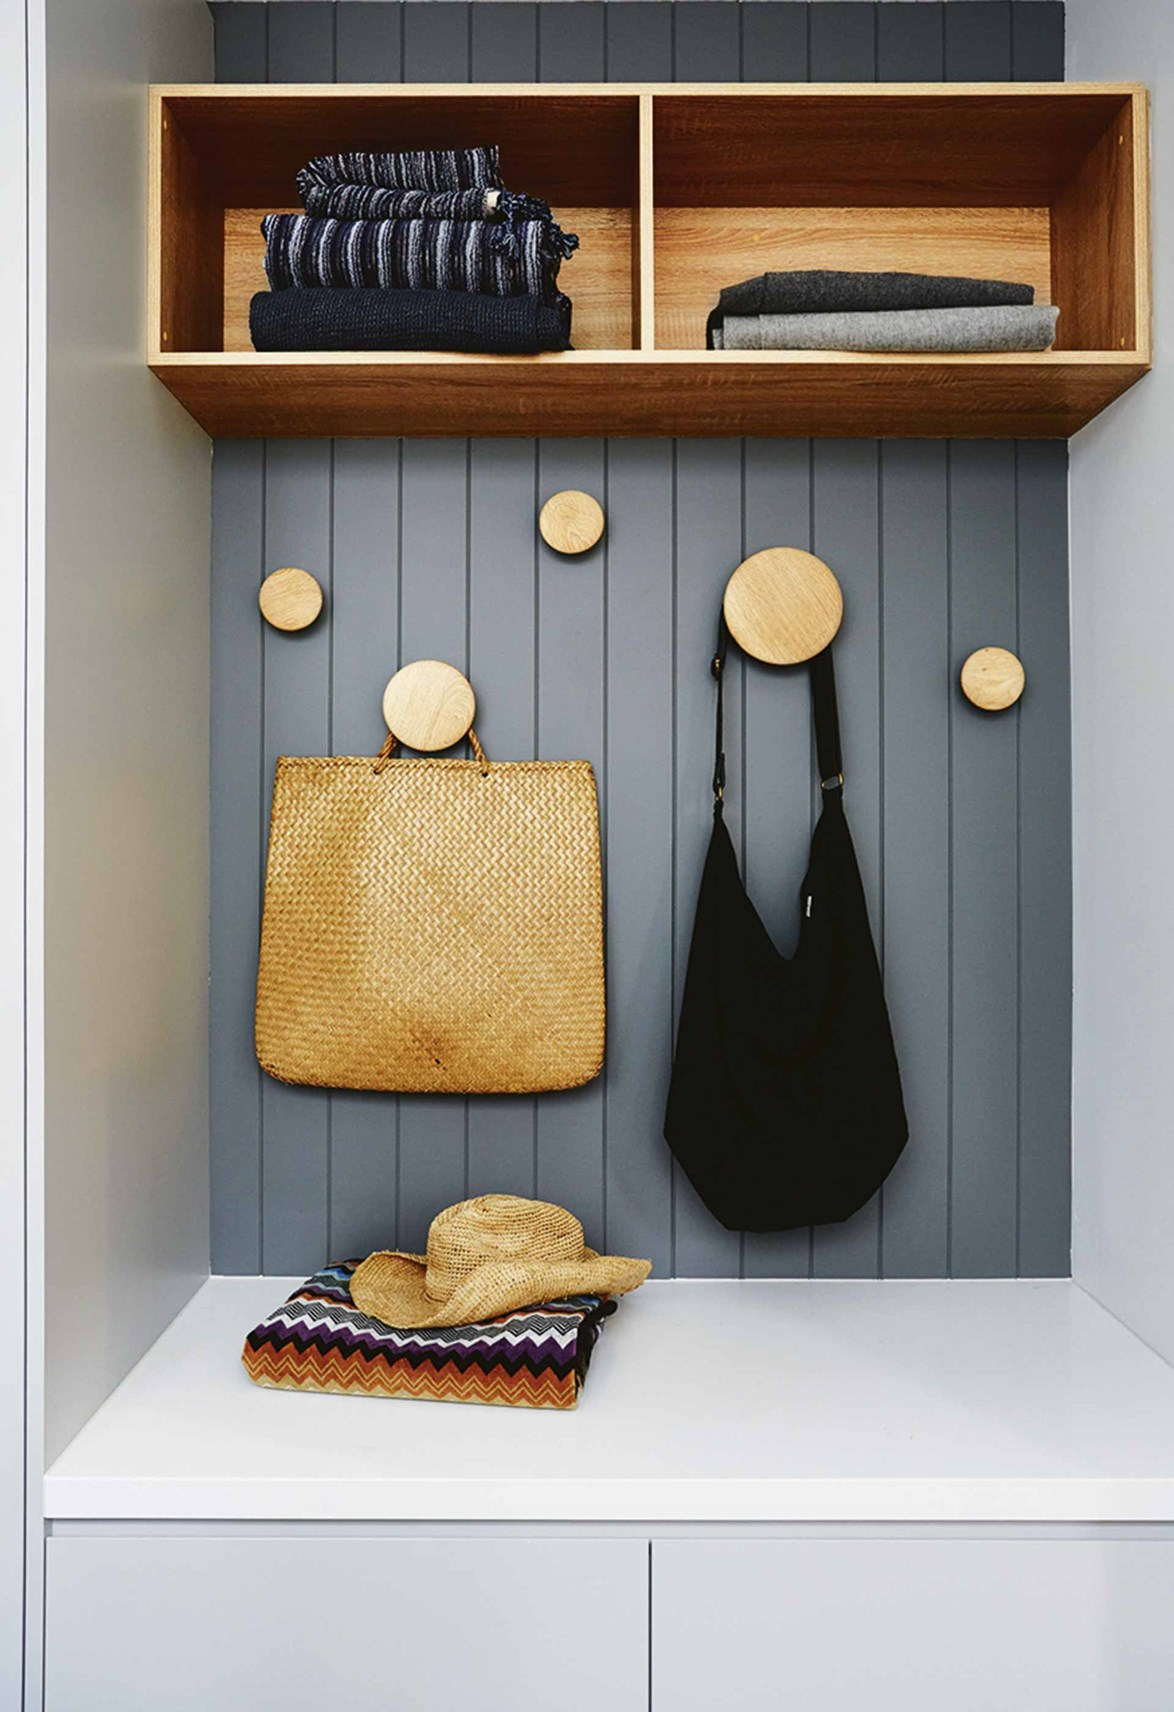 This handy storage nook is in the laundry and is the ideal spot for school bags, umbrellas and towels.